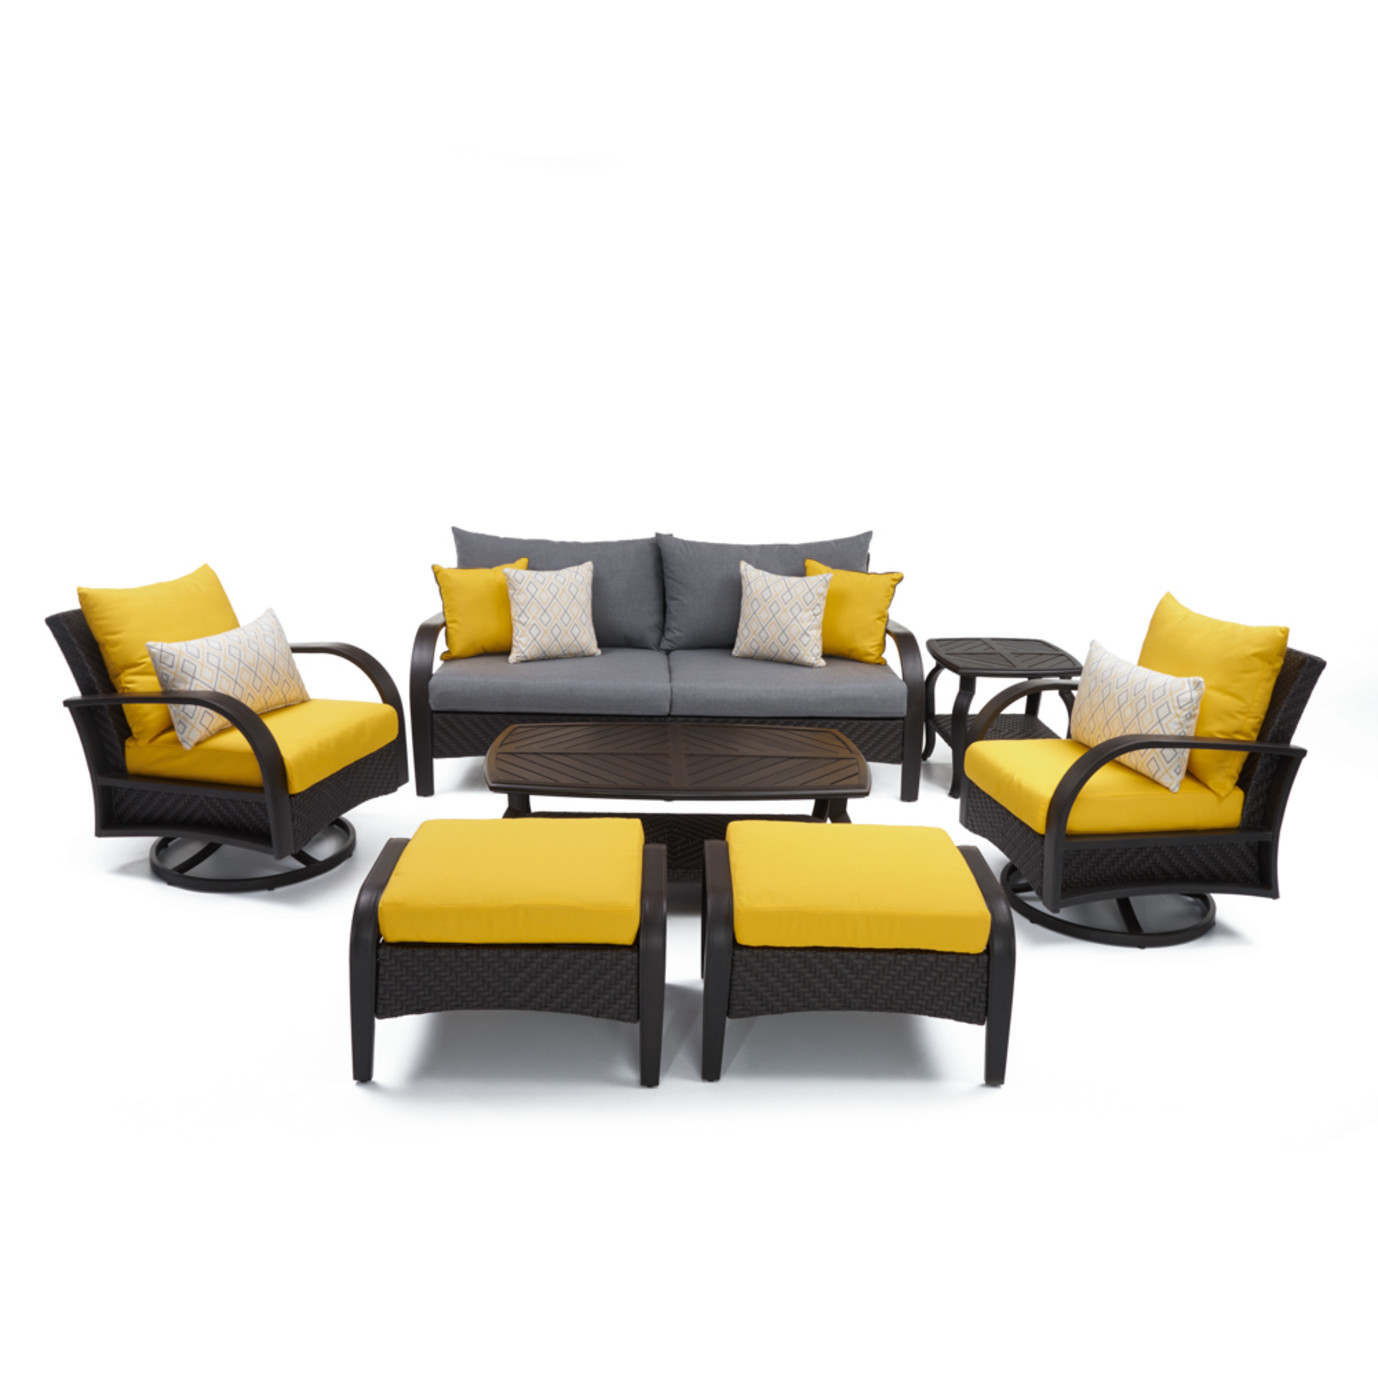 Barcelo™ 7pc Motion Club Deep Seating Set - Sunflower Yellow